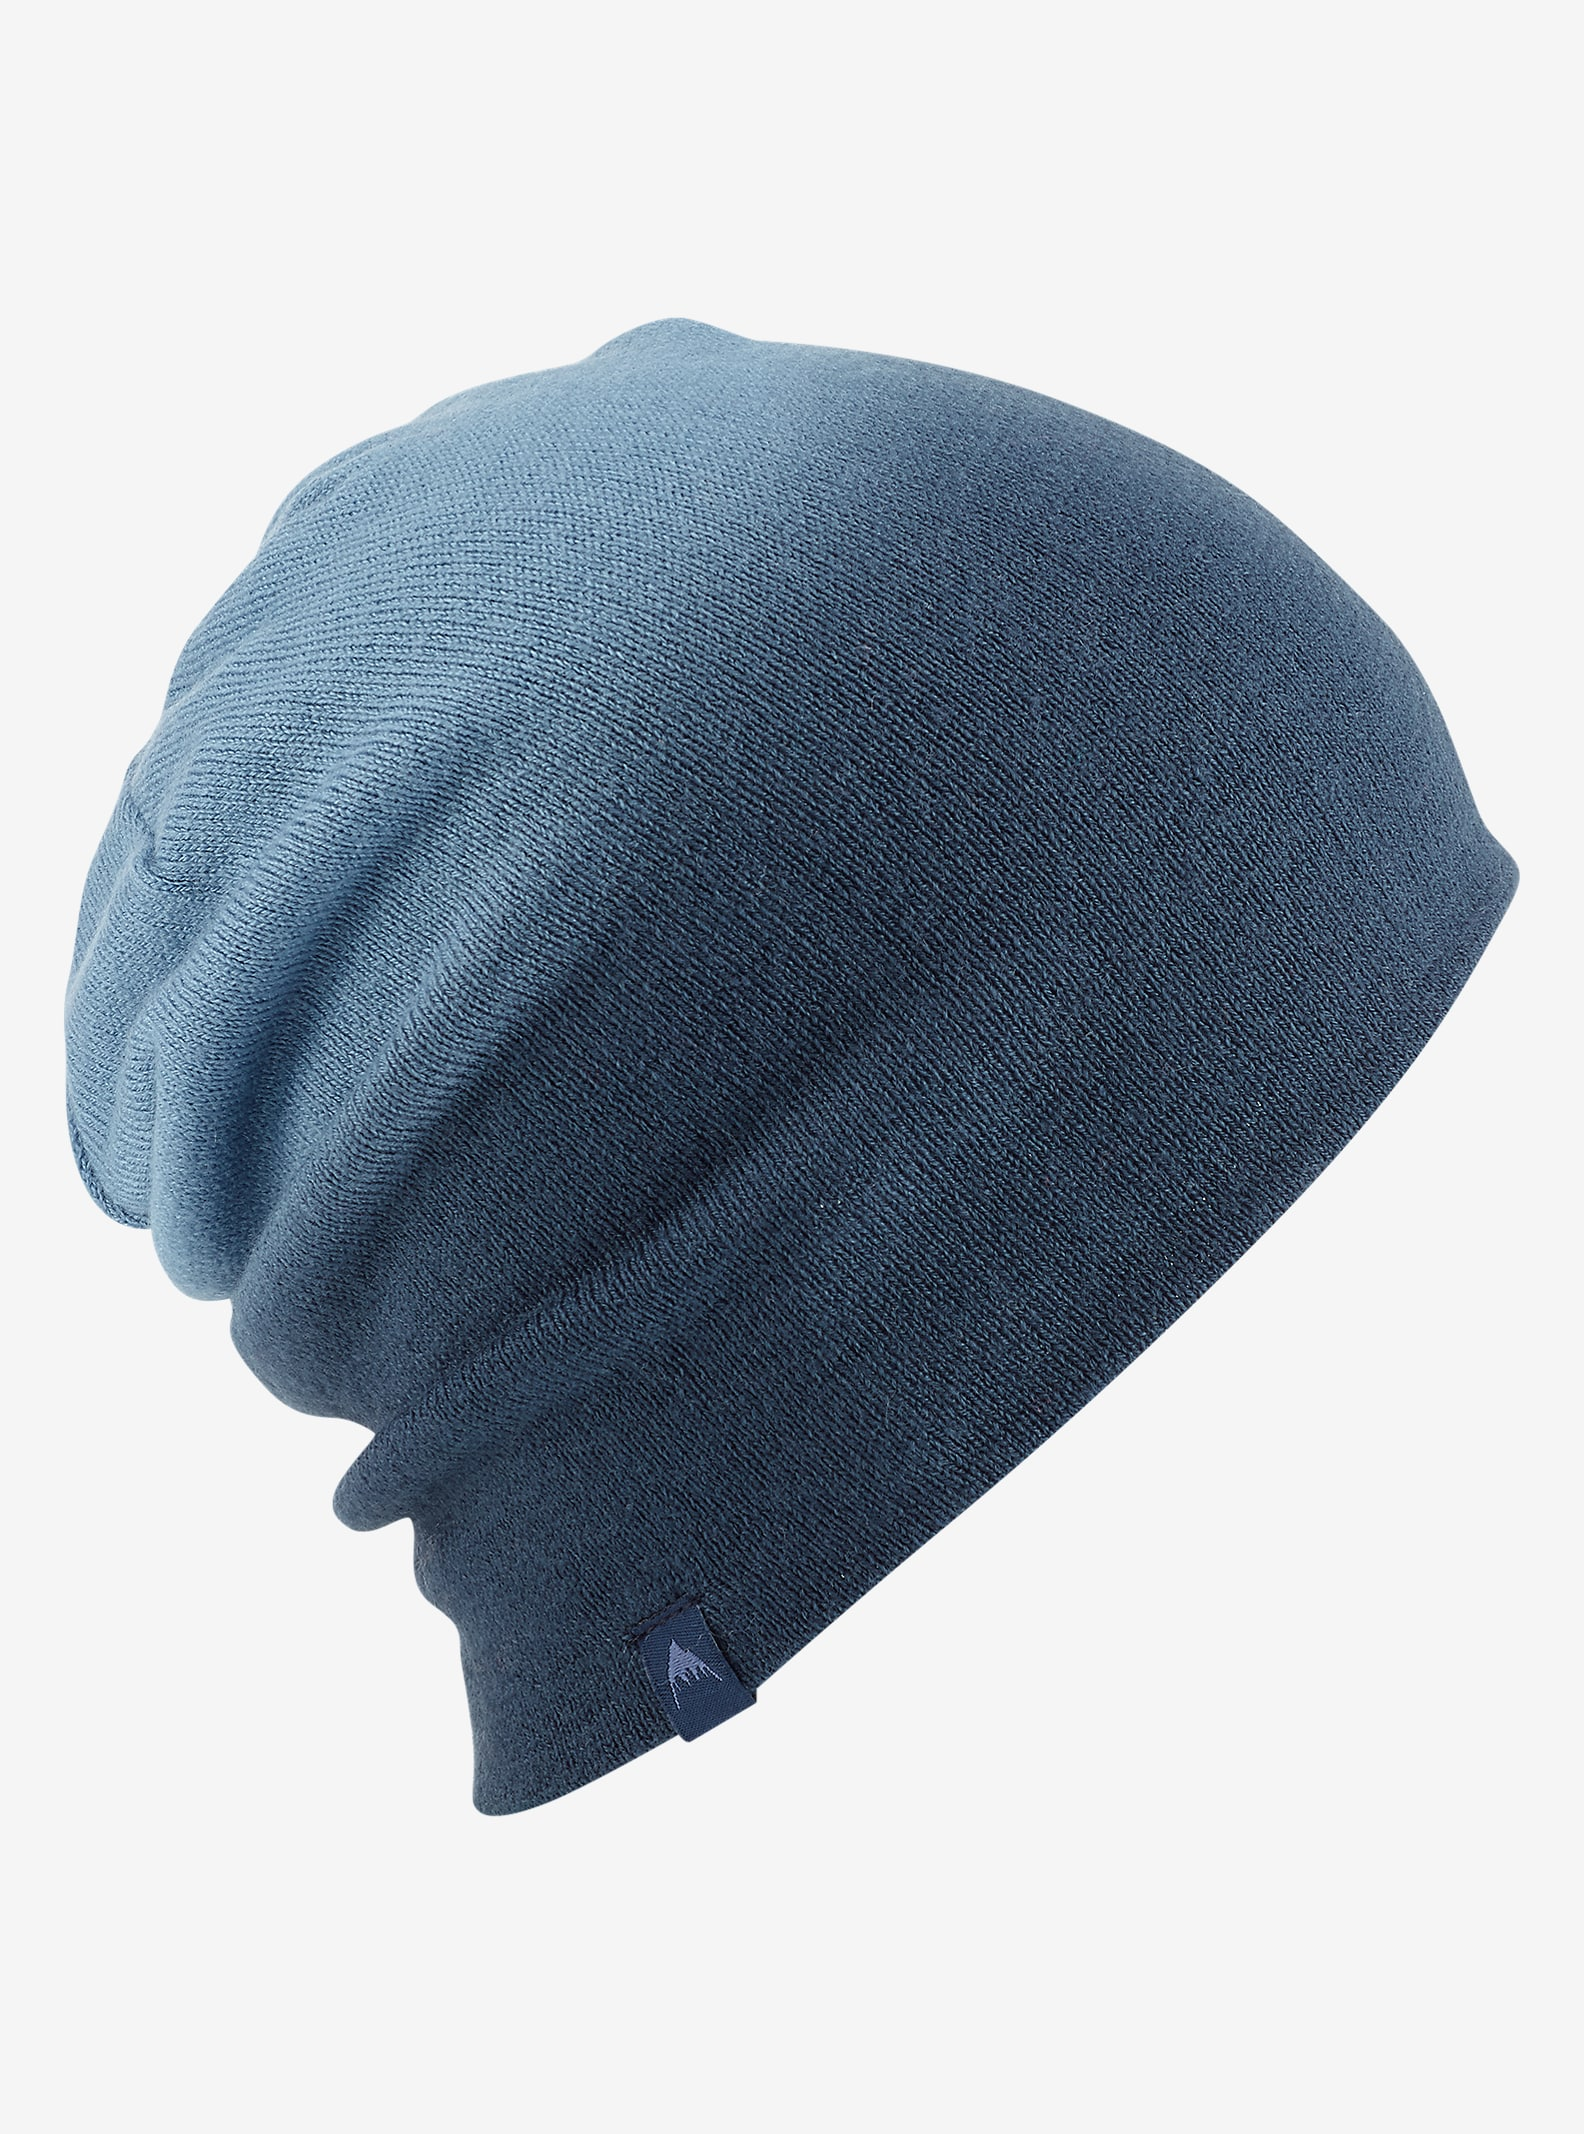 Burton Crush Beanie - Reversible shown in Mood Indigo / Infinity